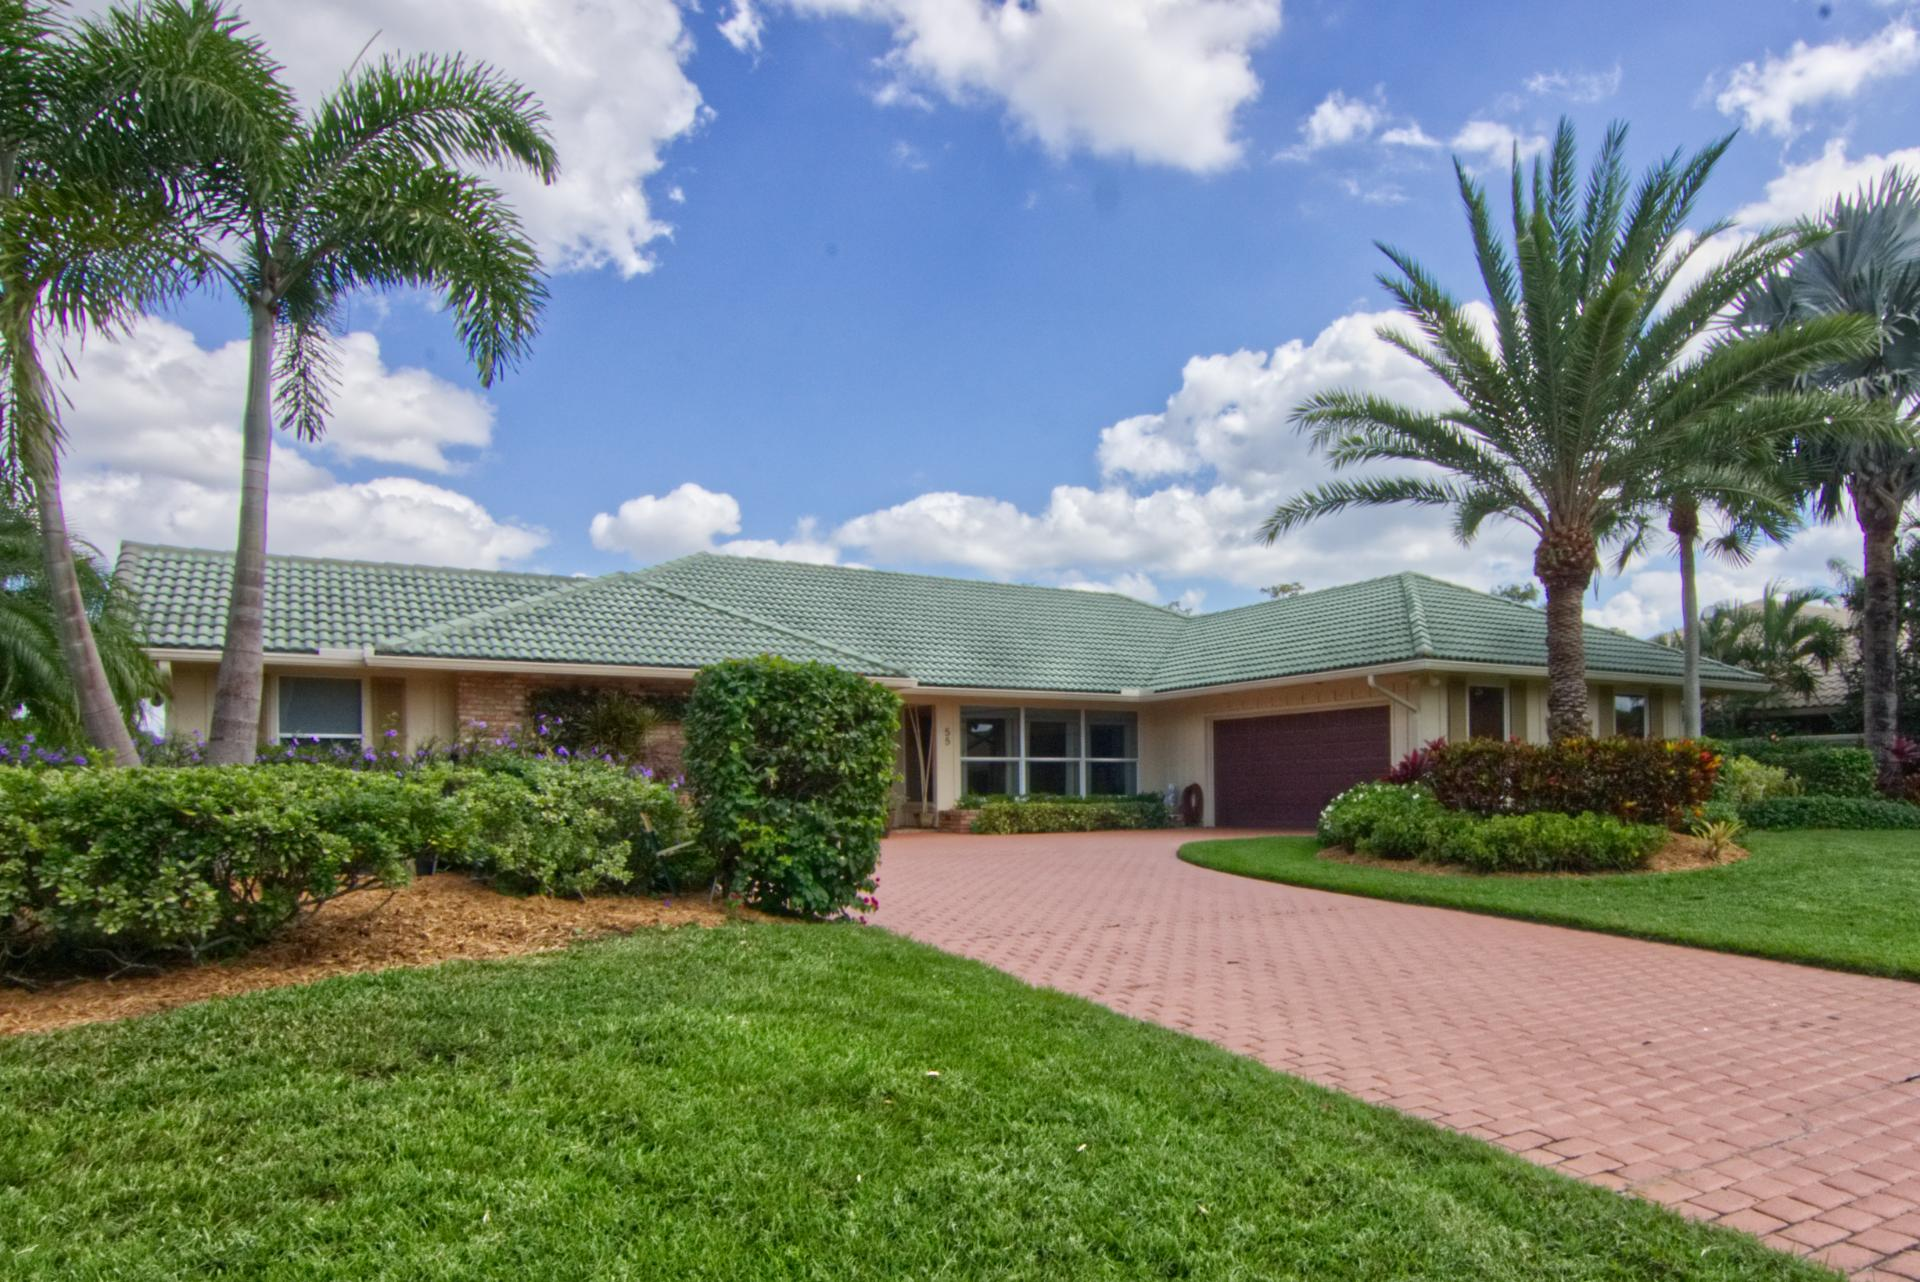 Home for sale in Marlwood Estates - Pga National Palm Beach Gardens Florida